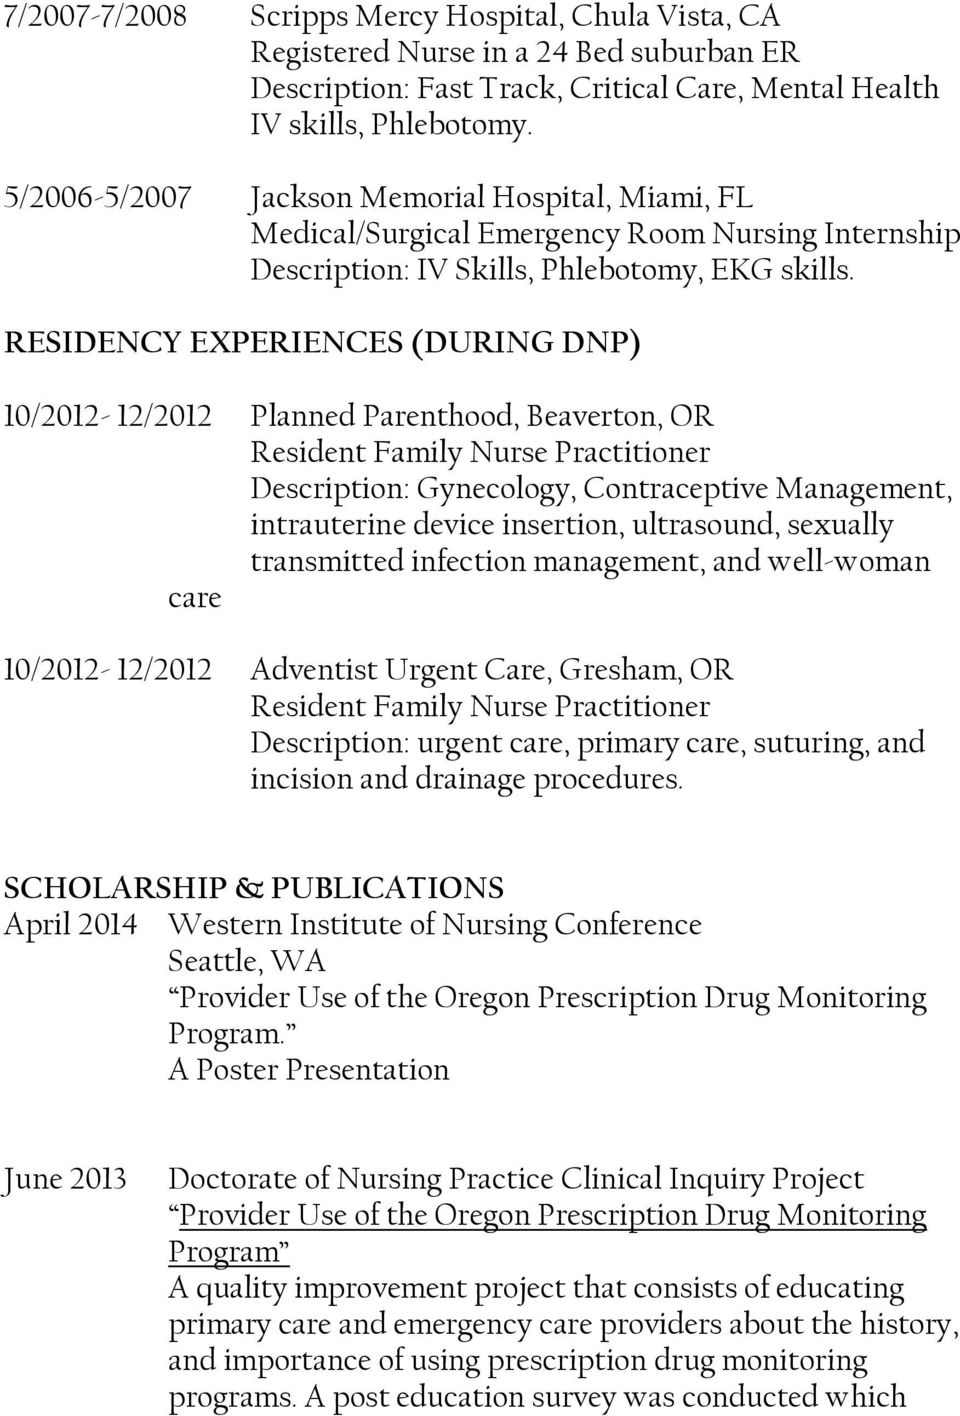 RESIDENCY EXPERIENCES (DURING DNP) 10/2012-12/2012 Planned Parenthood, Beaverton, OR Resident Family Nurse Practitioner Description: Gynecology, Contraceptive Management, intrauterine device